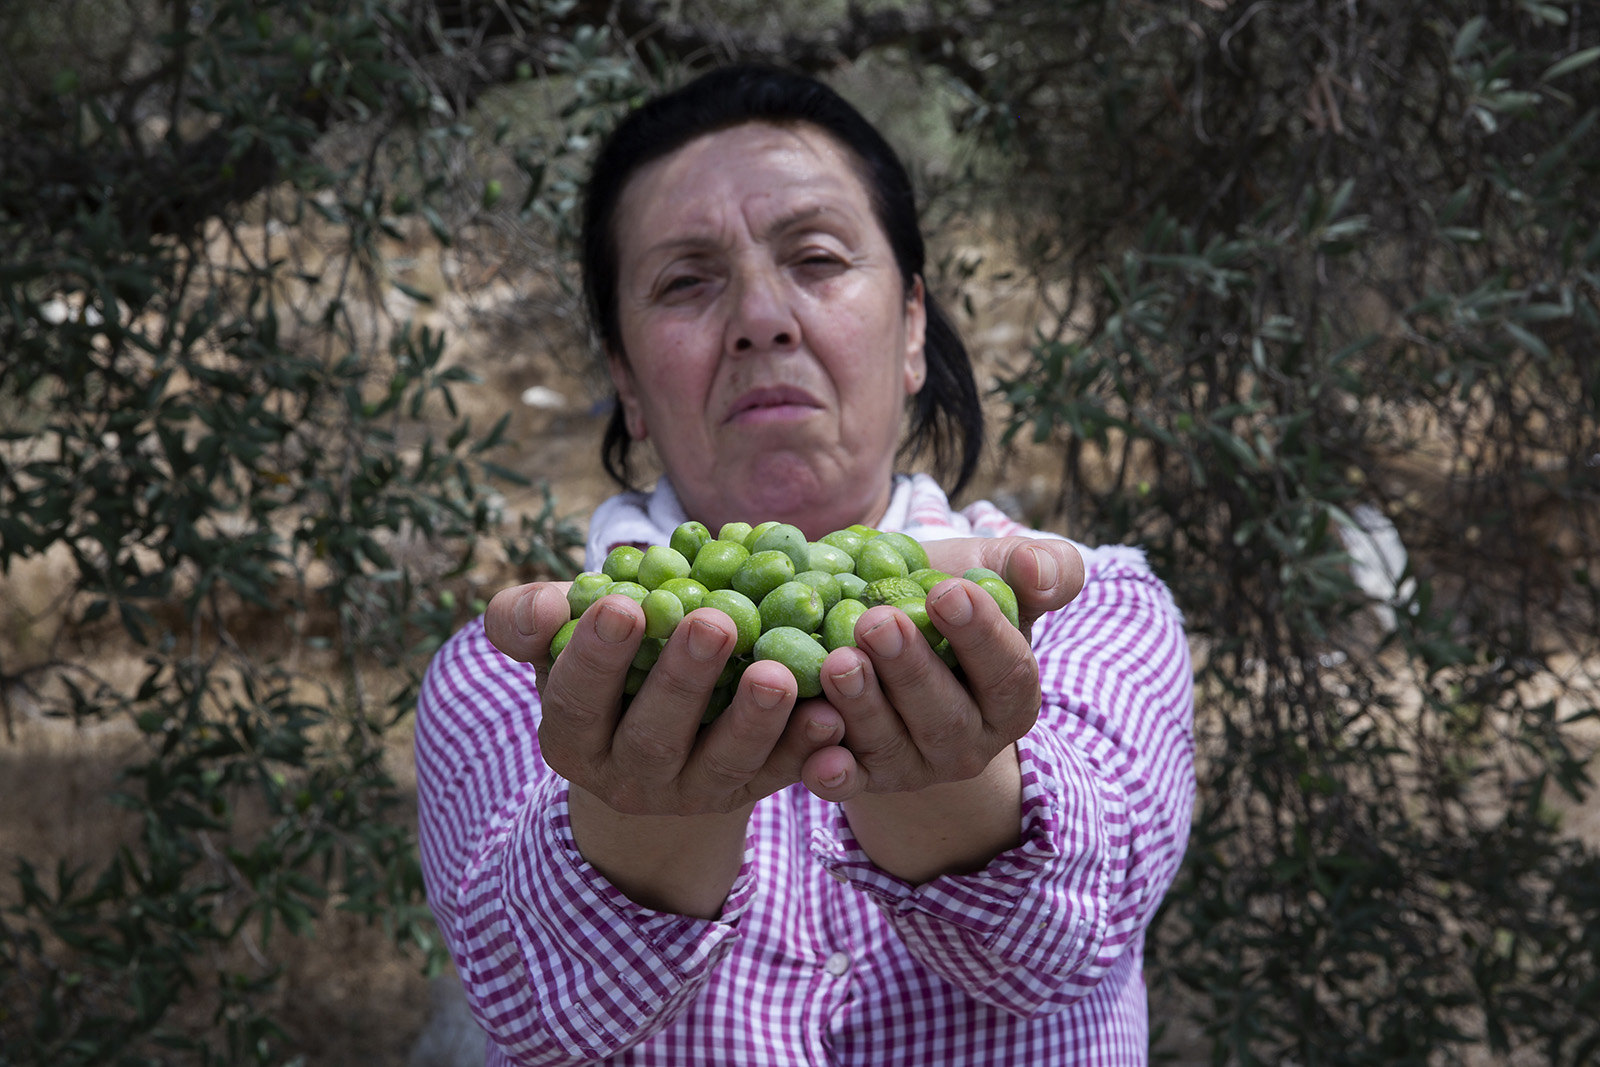 Syrian women food producers